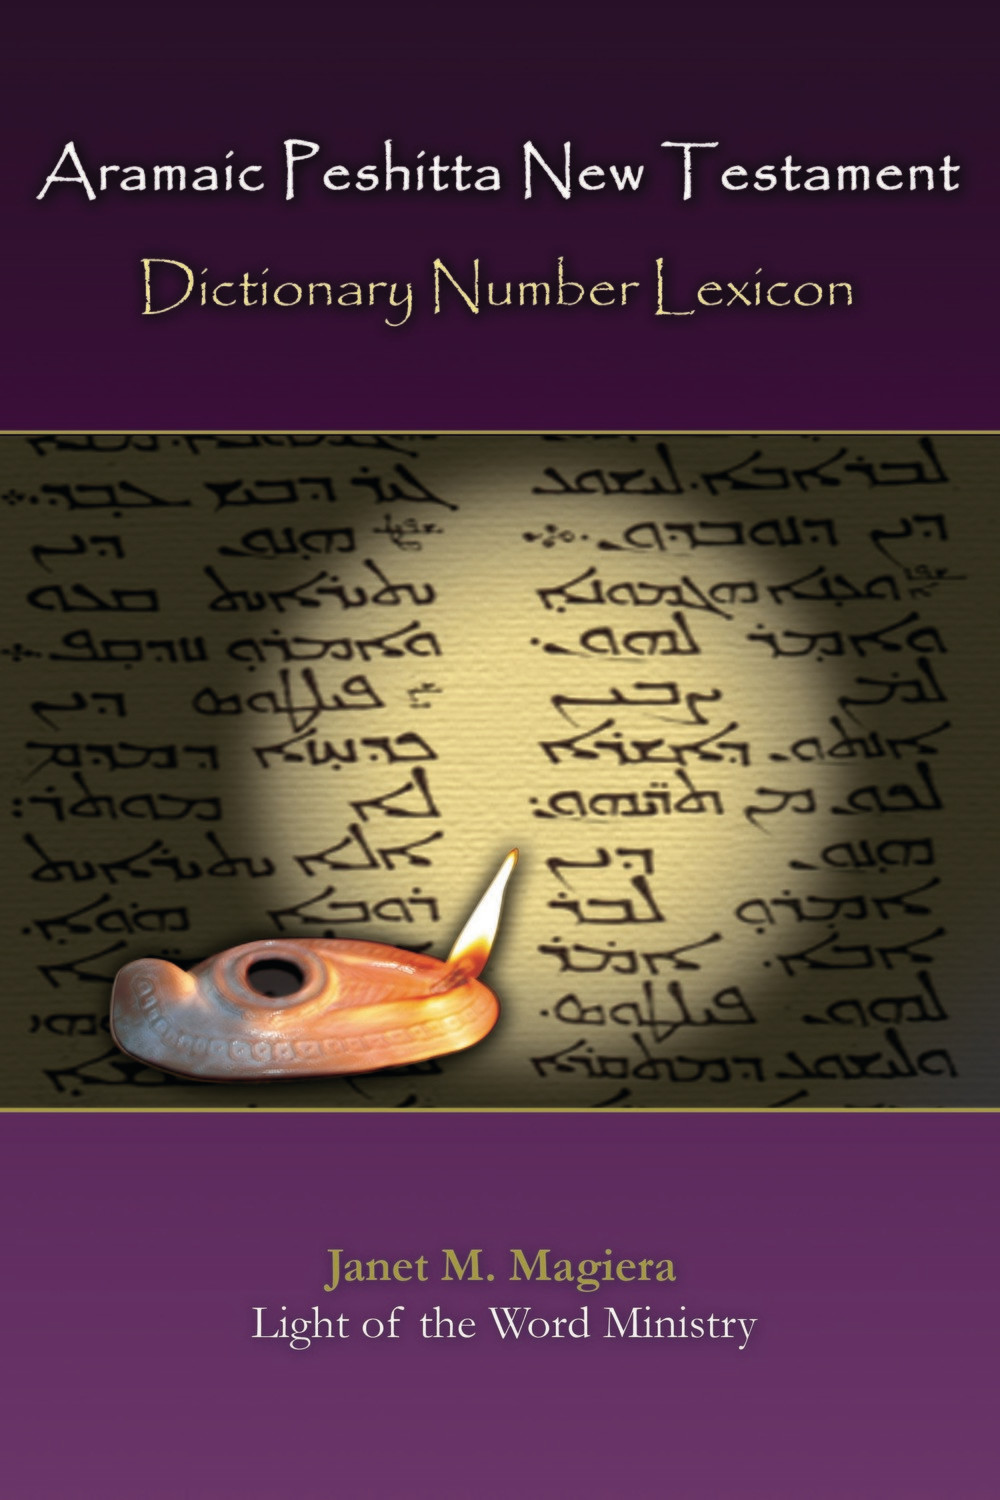 Dictionary Number Lexicon